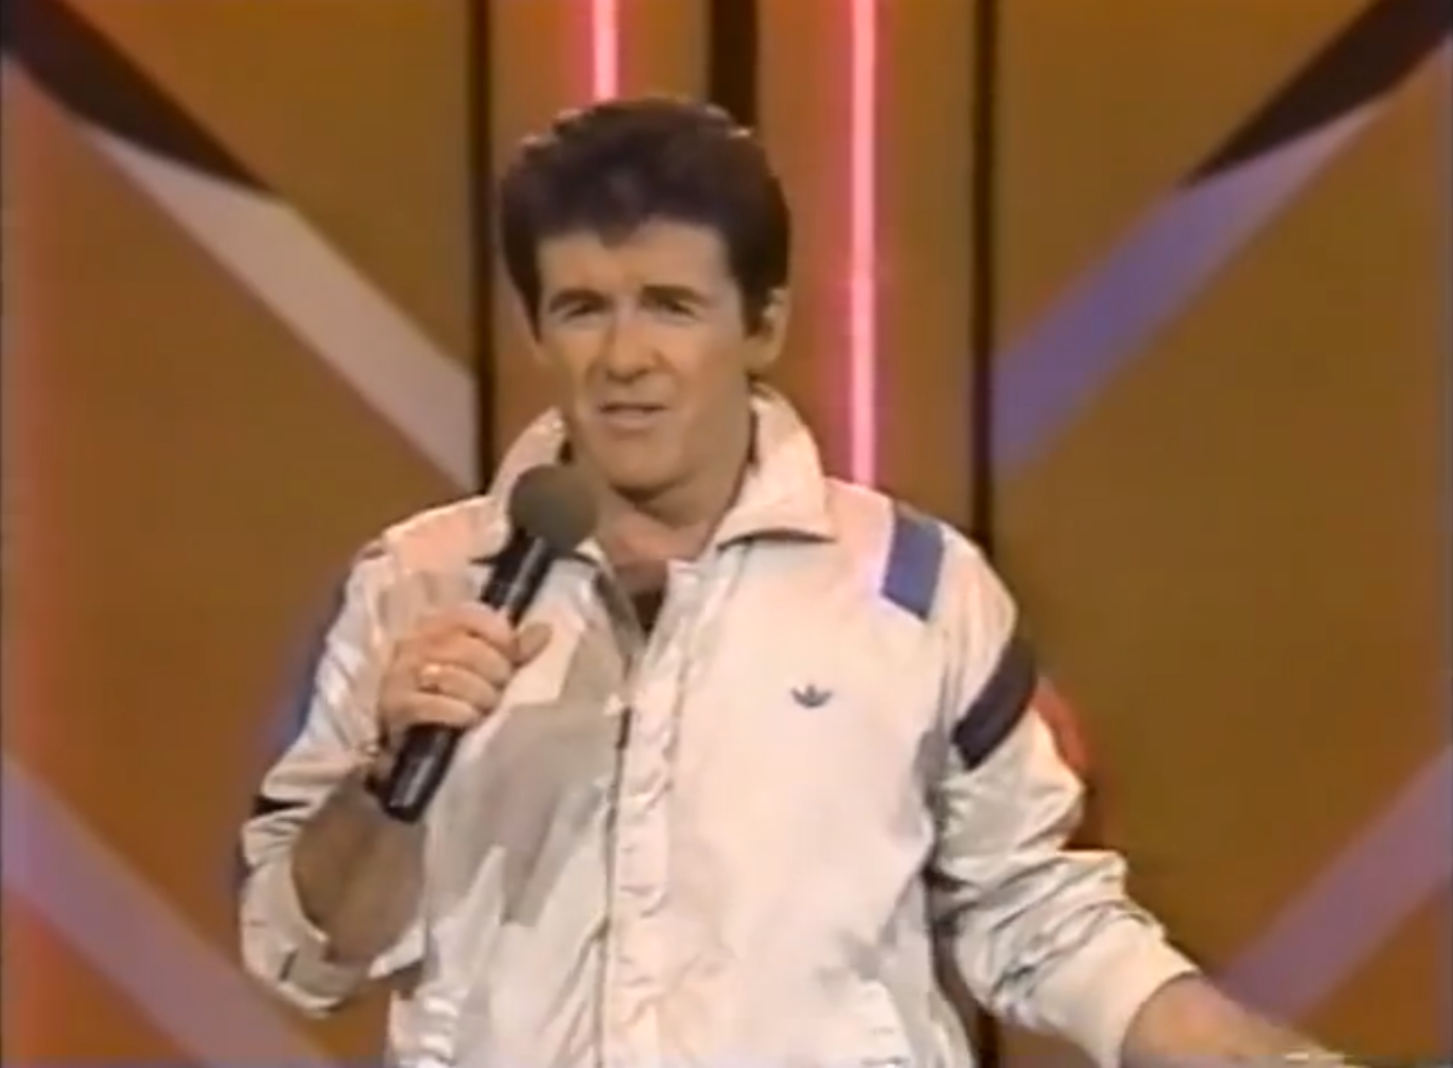 Flashbach friday video alan thicke sweaty and hot pro motion flashbach friday video alan thicke sweaty and hot pro motion music news nvjuhfo Image collections